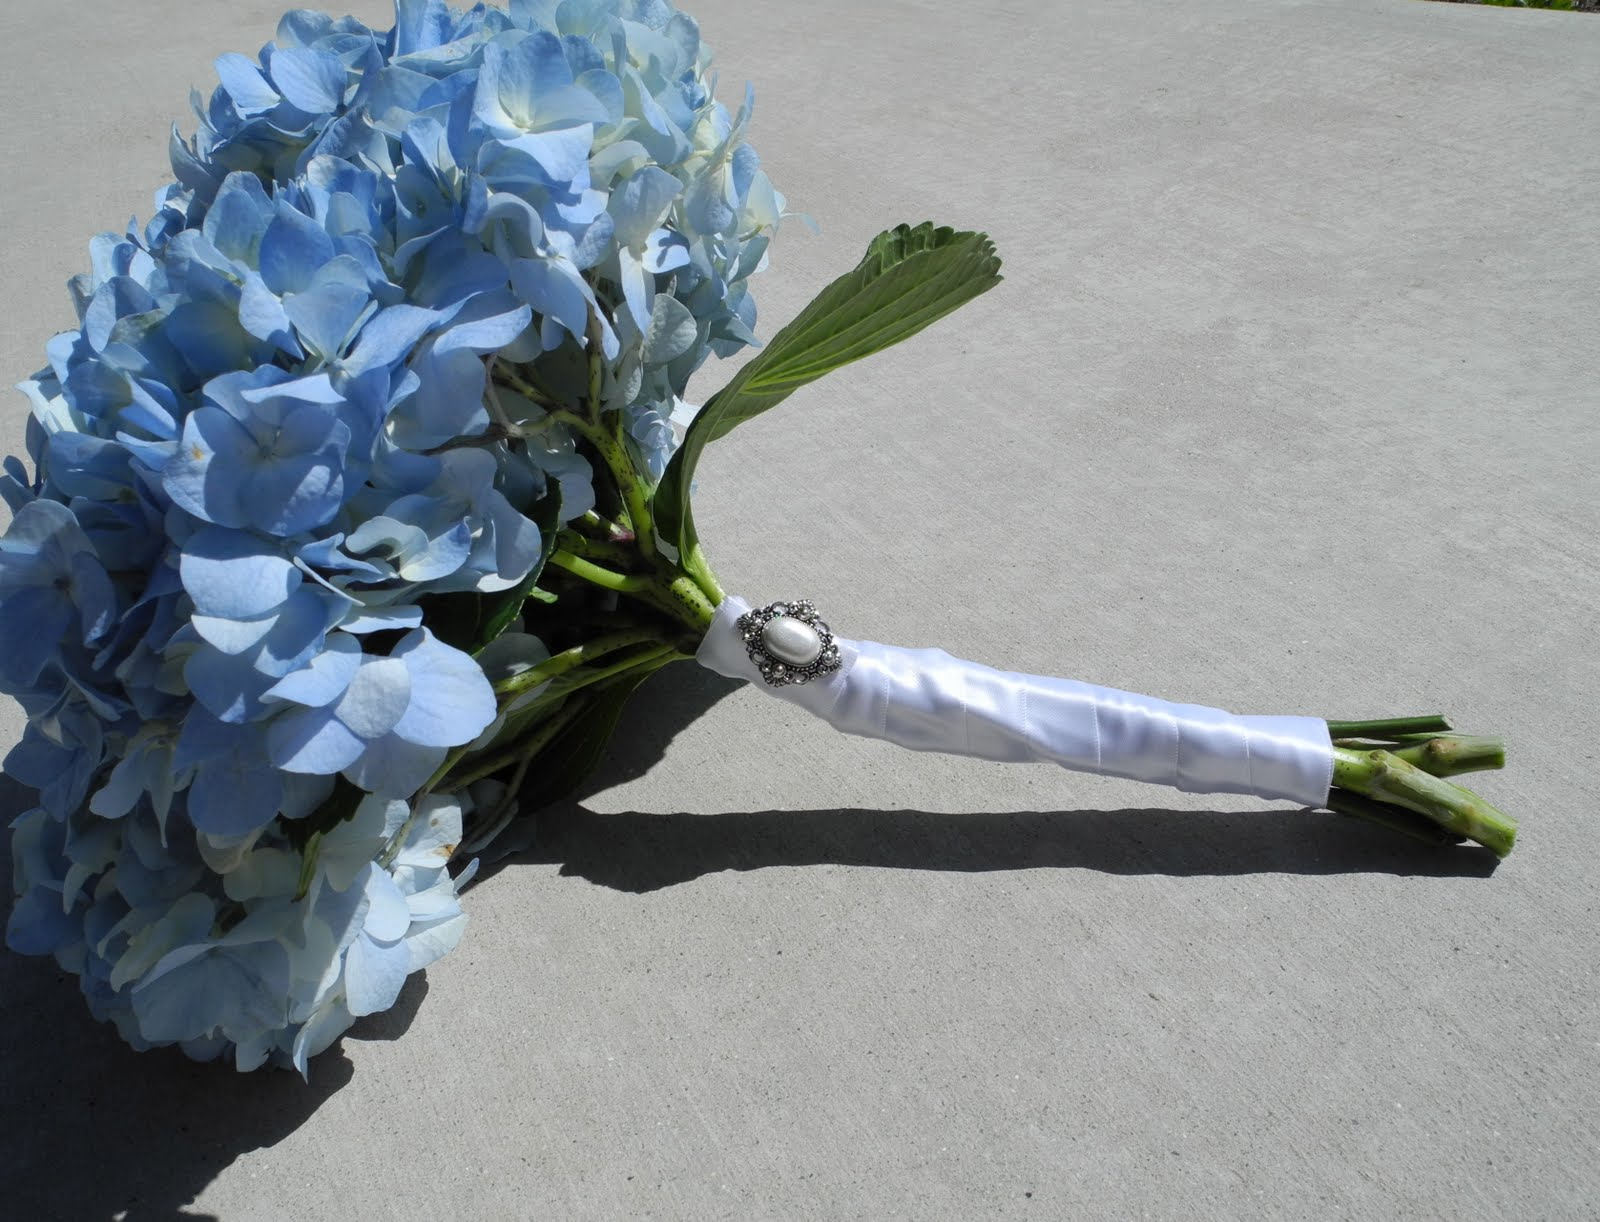 We Went With A Blue Hydrangea Bouquet For The Photo Session Little Silver And Pearl Brooch